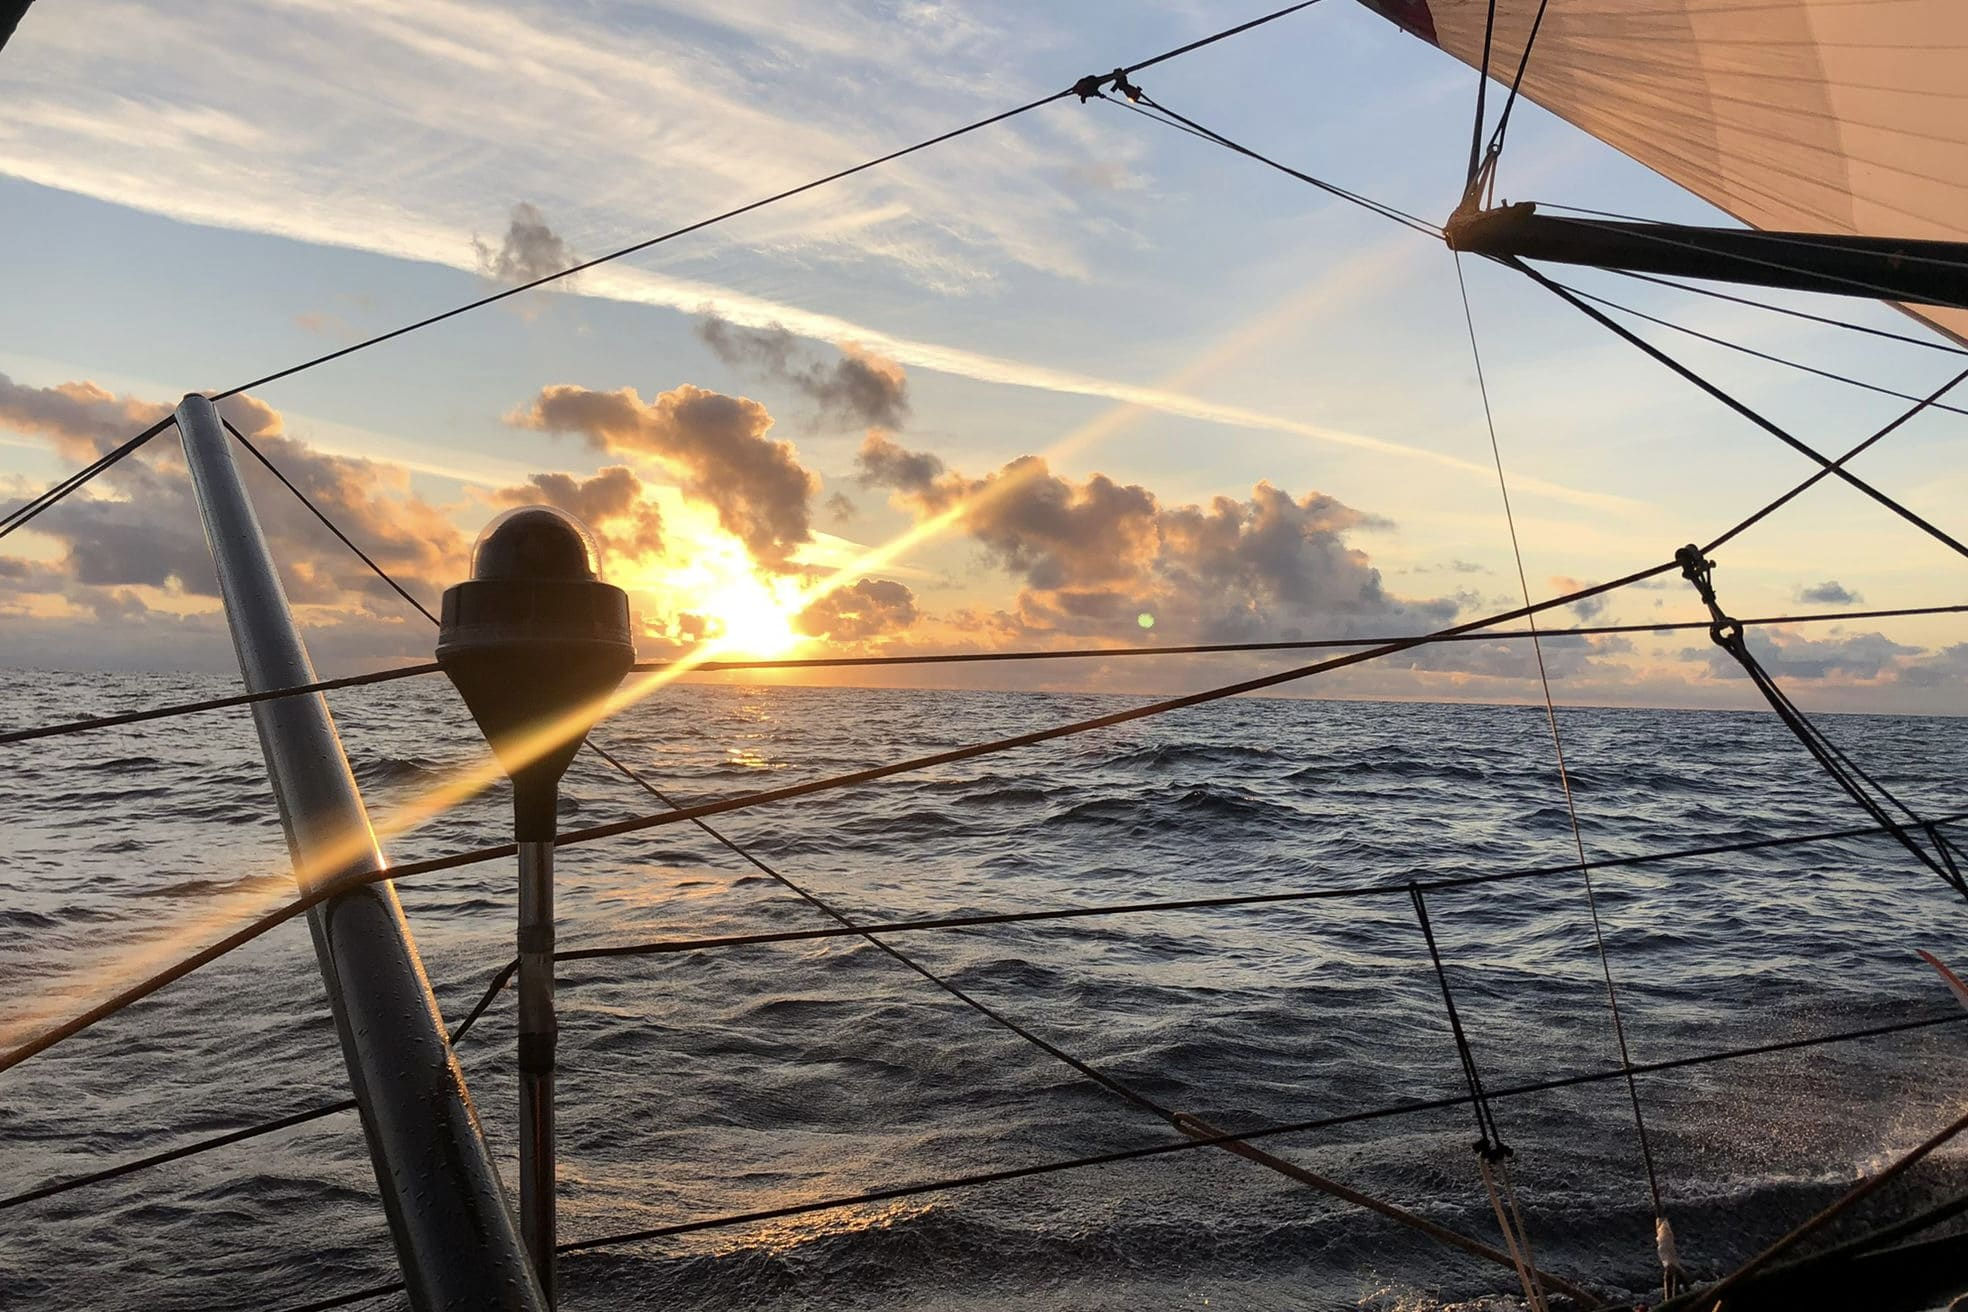 Sunrise onboard 11th Hour Racing Team during the 2021 Rolex Fastnet Race